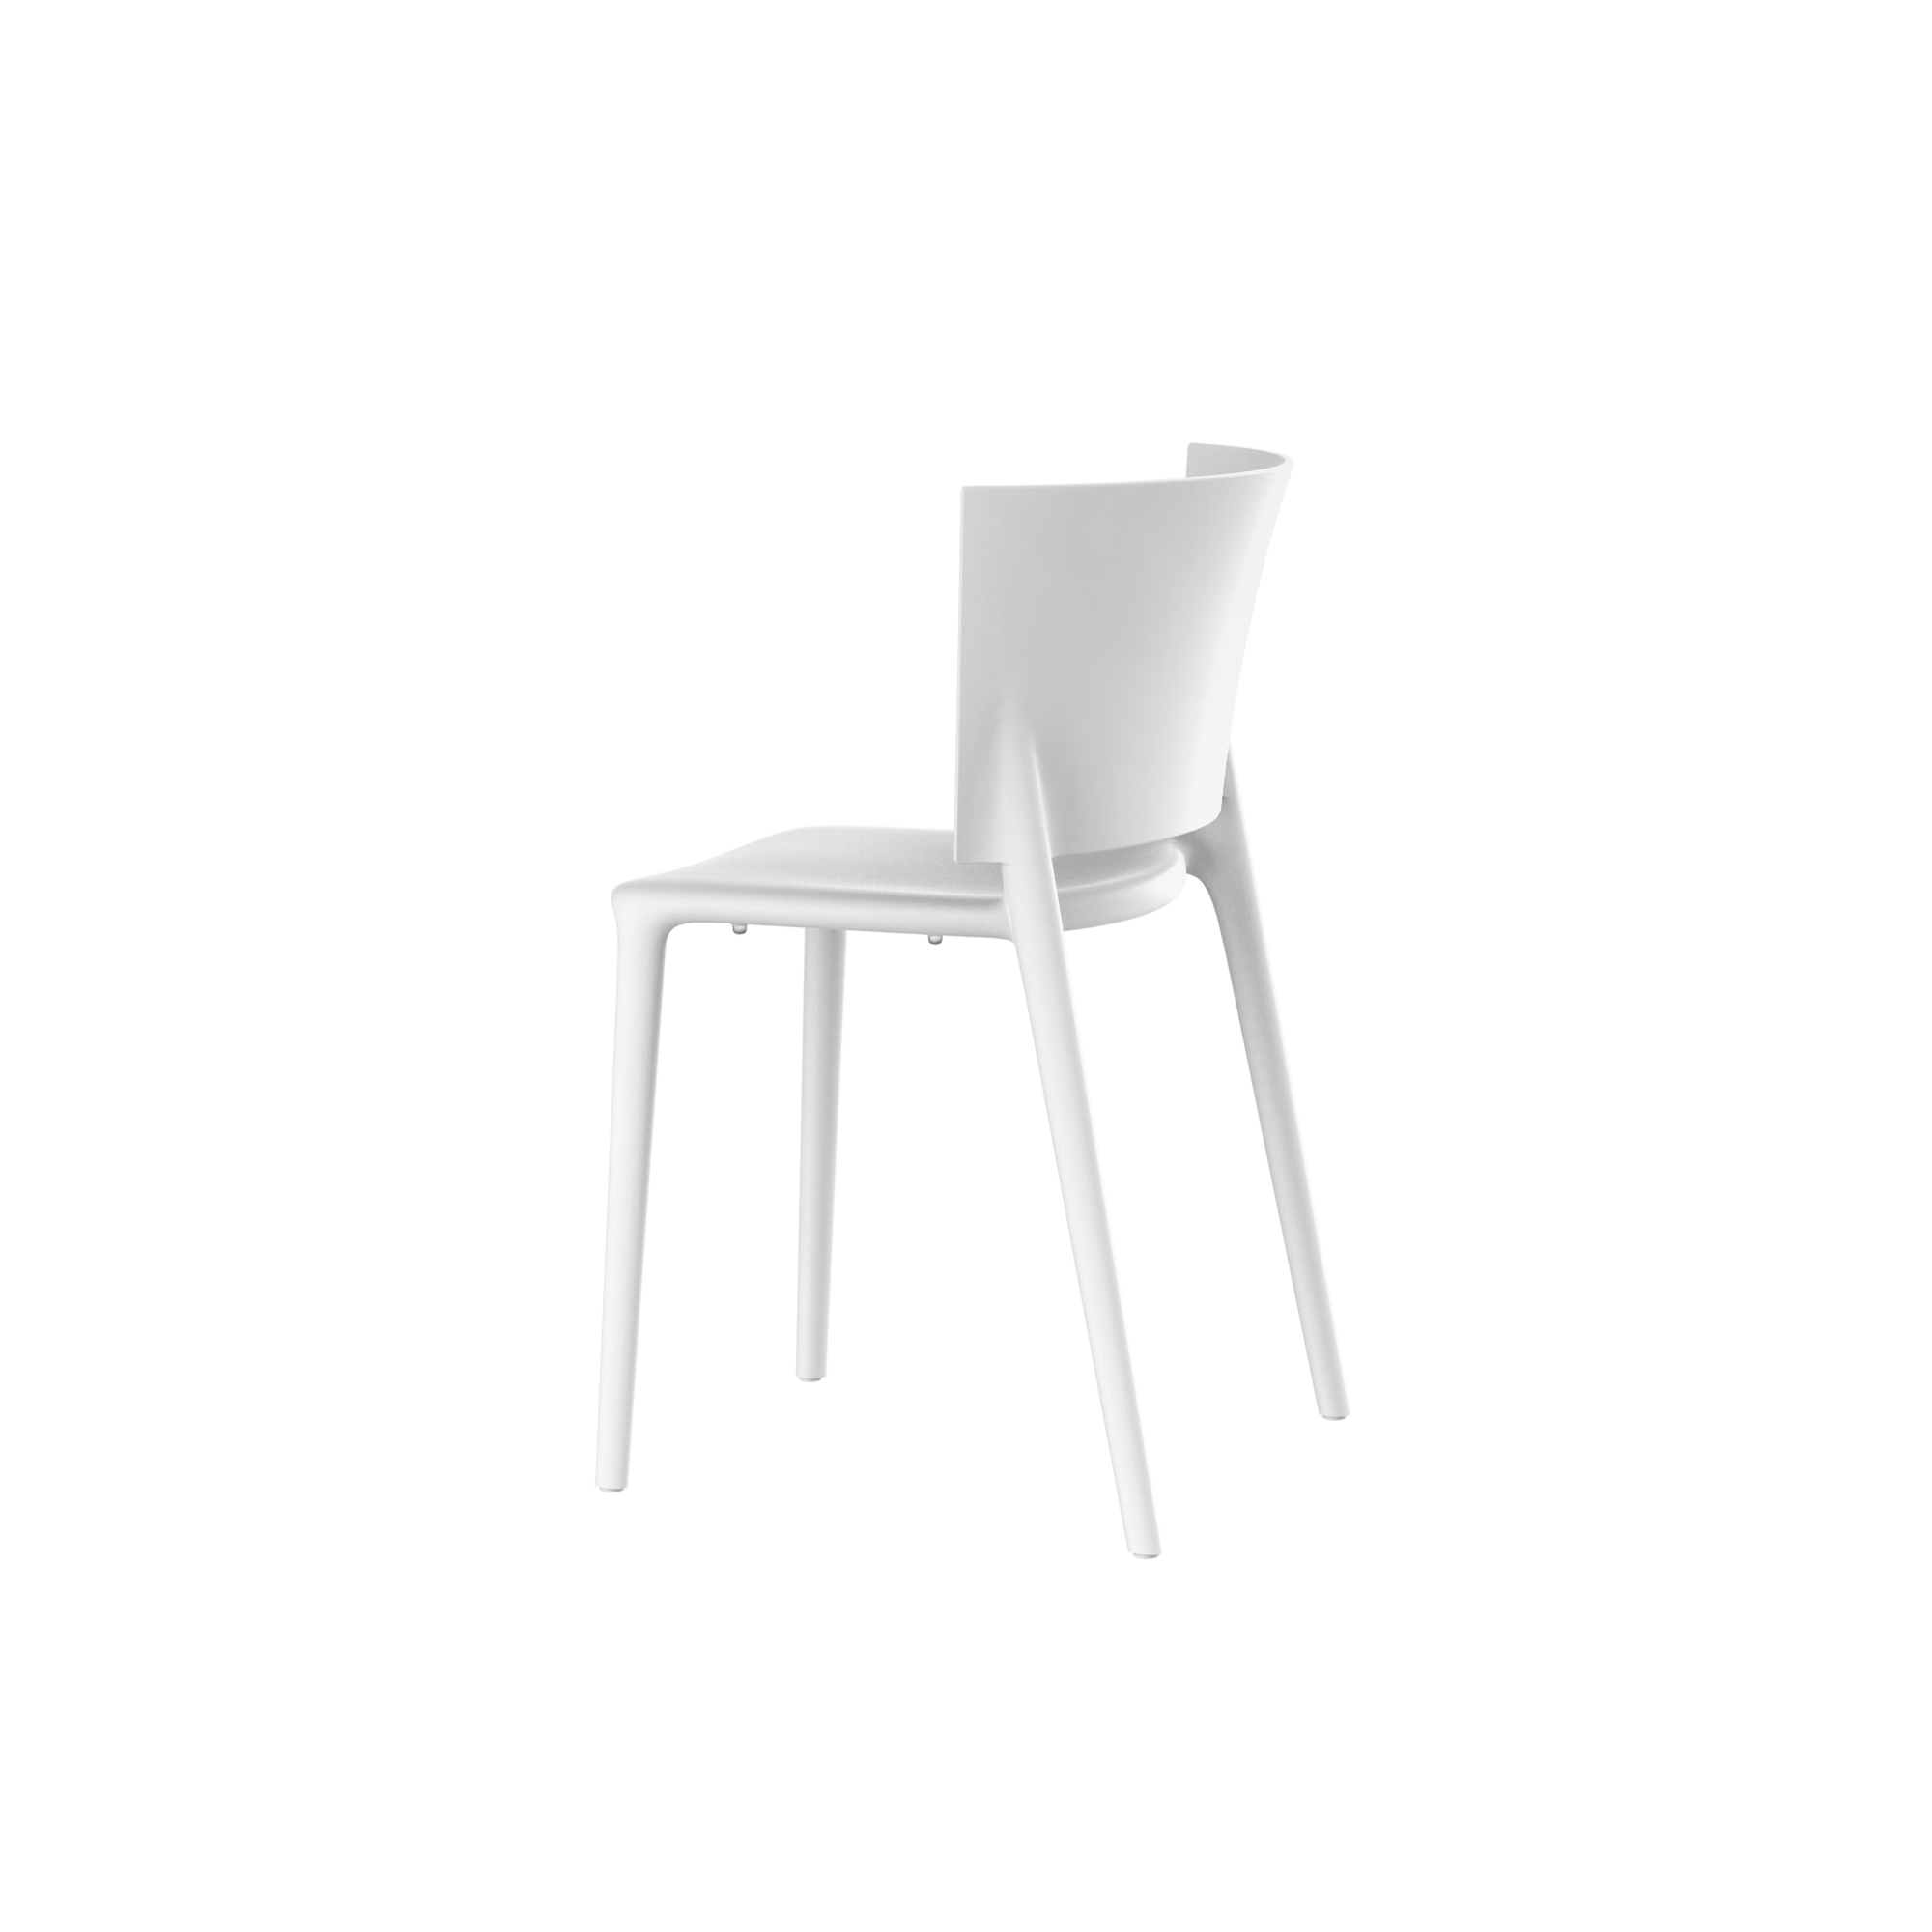 AFRICA CHAIR EUGENI QUITLLET VONDOM OUTDOOR STACKABLE SILLA EXTERIOR DESIGN (1)